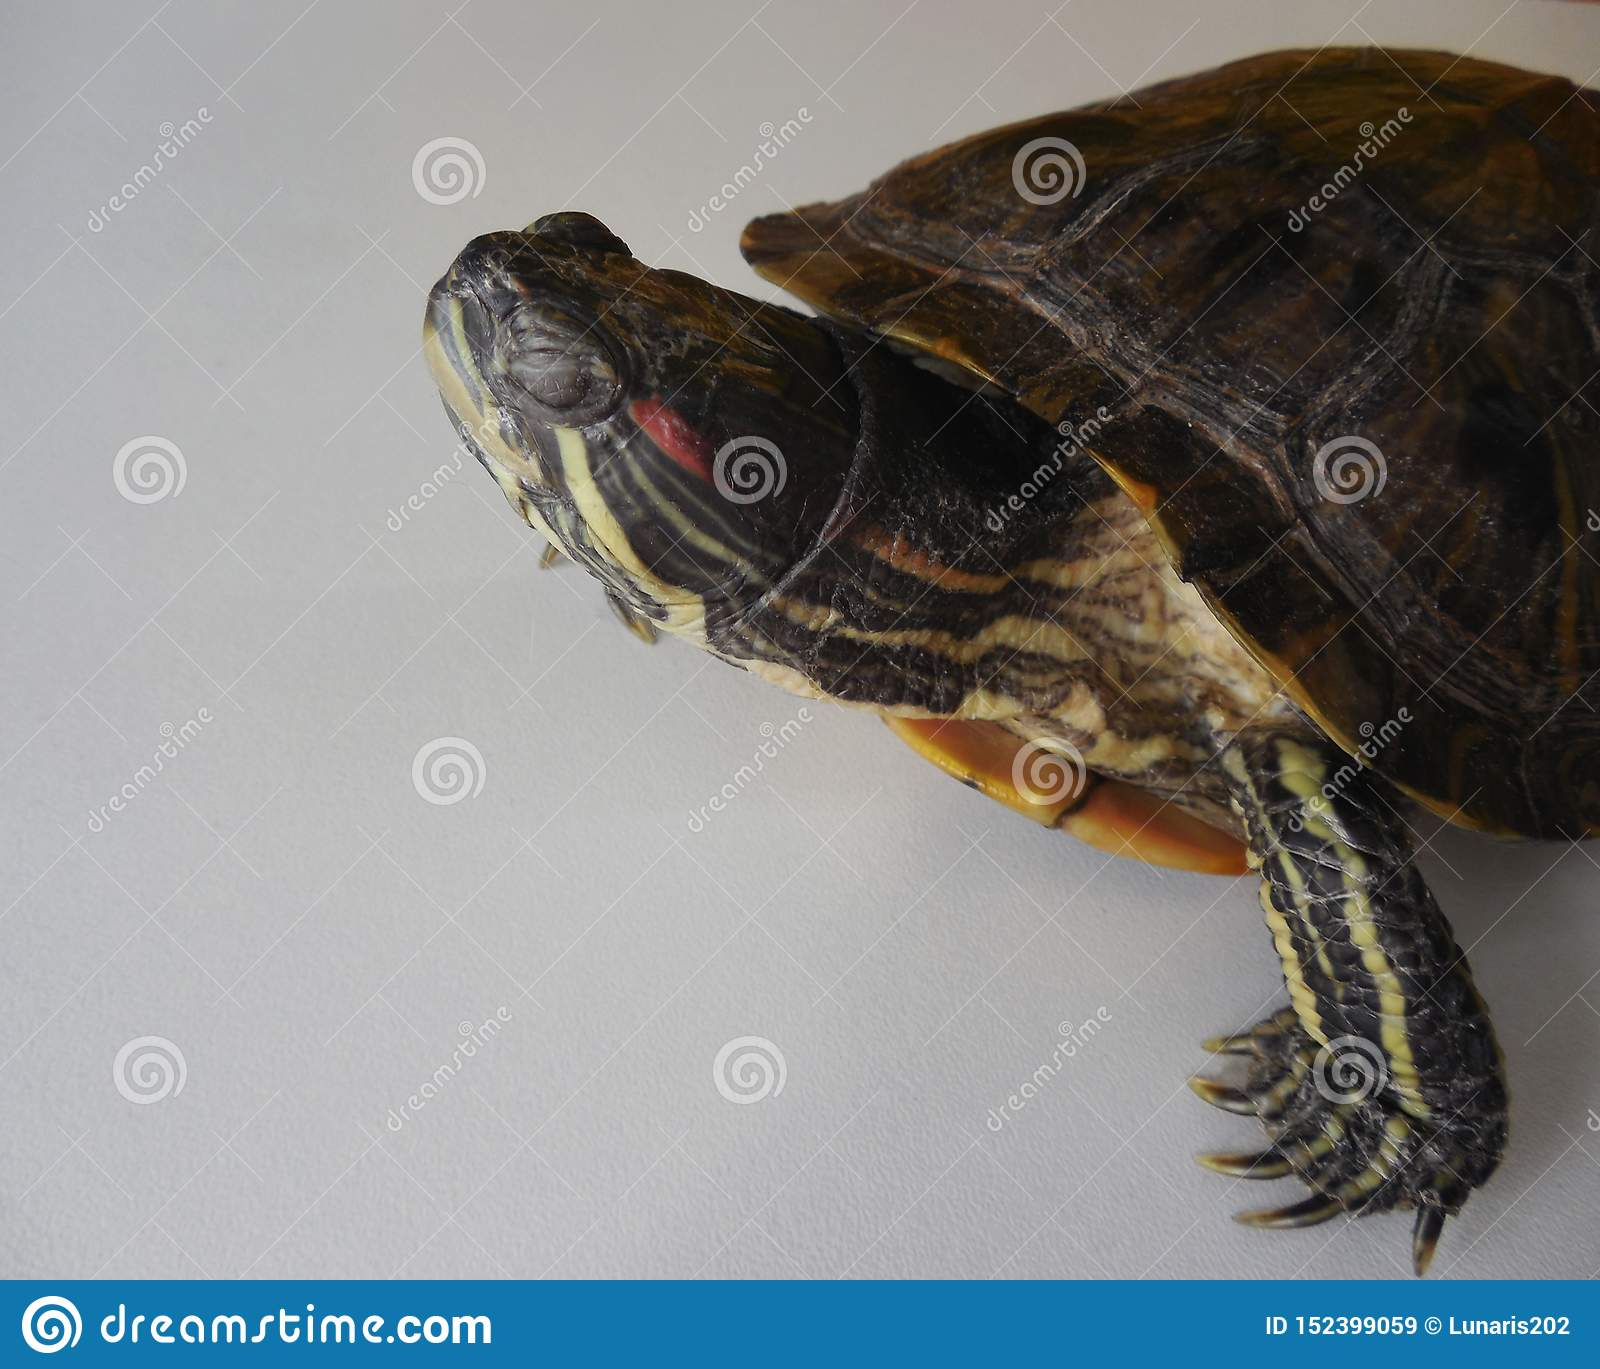 Turtle Water On Land. I Closed My Eyes Side View. Stock ...